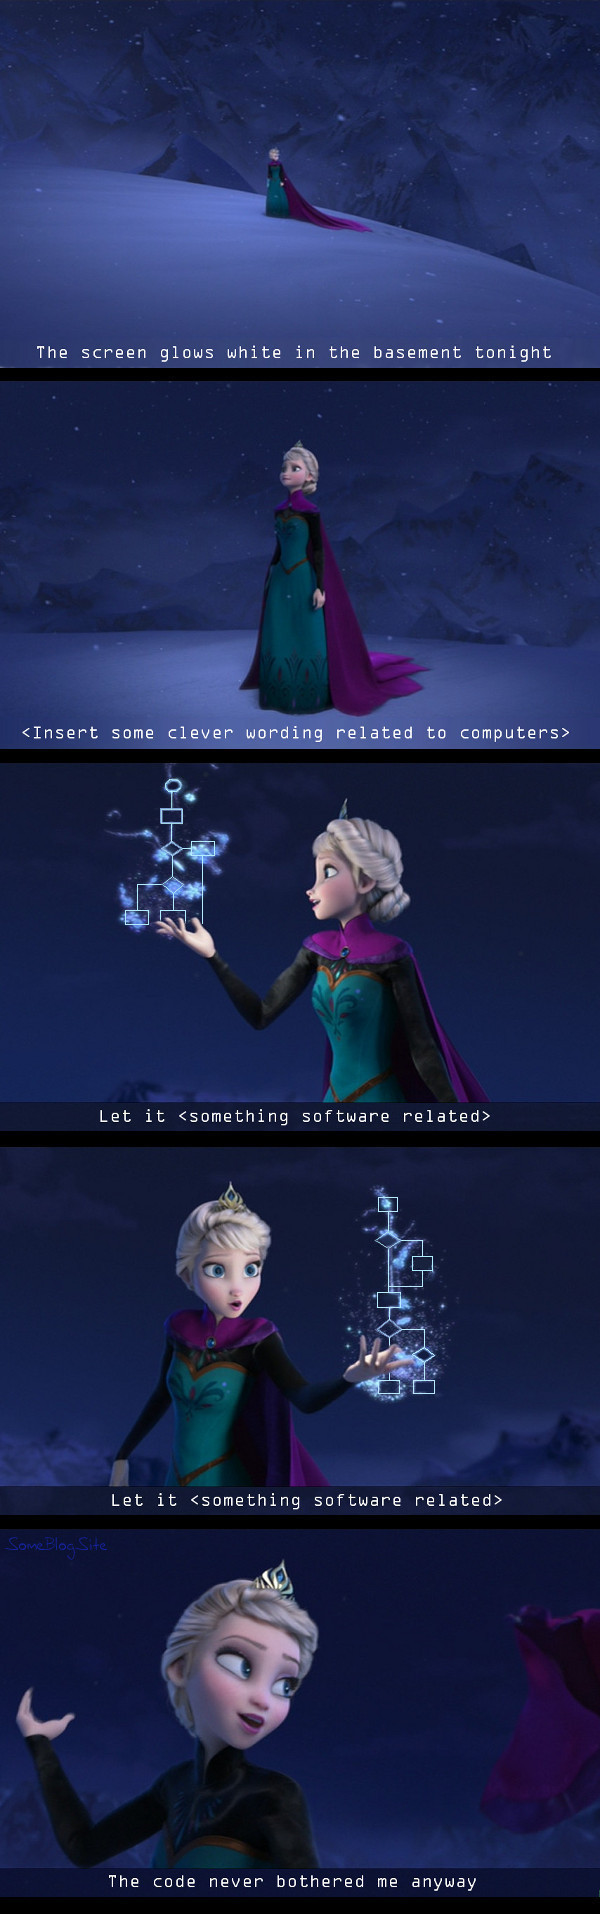 image of the coder's version of Let It Go, AKA Let It Goto